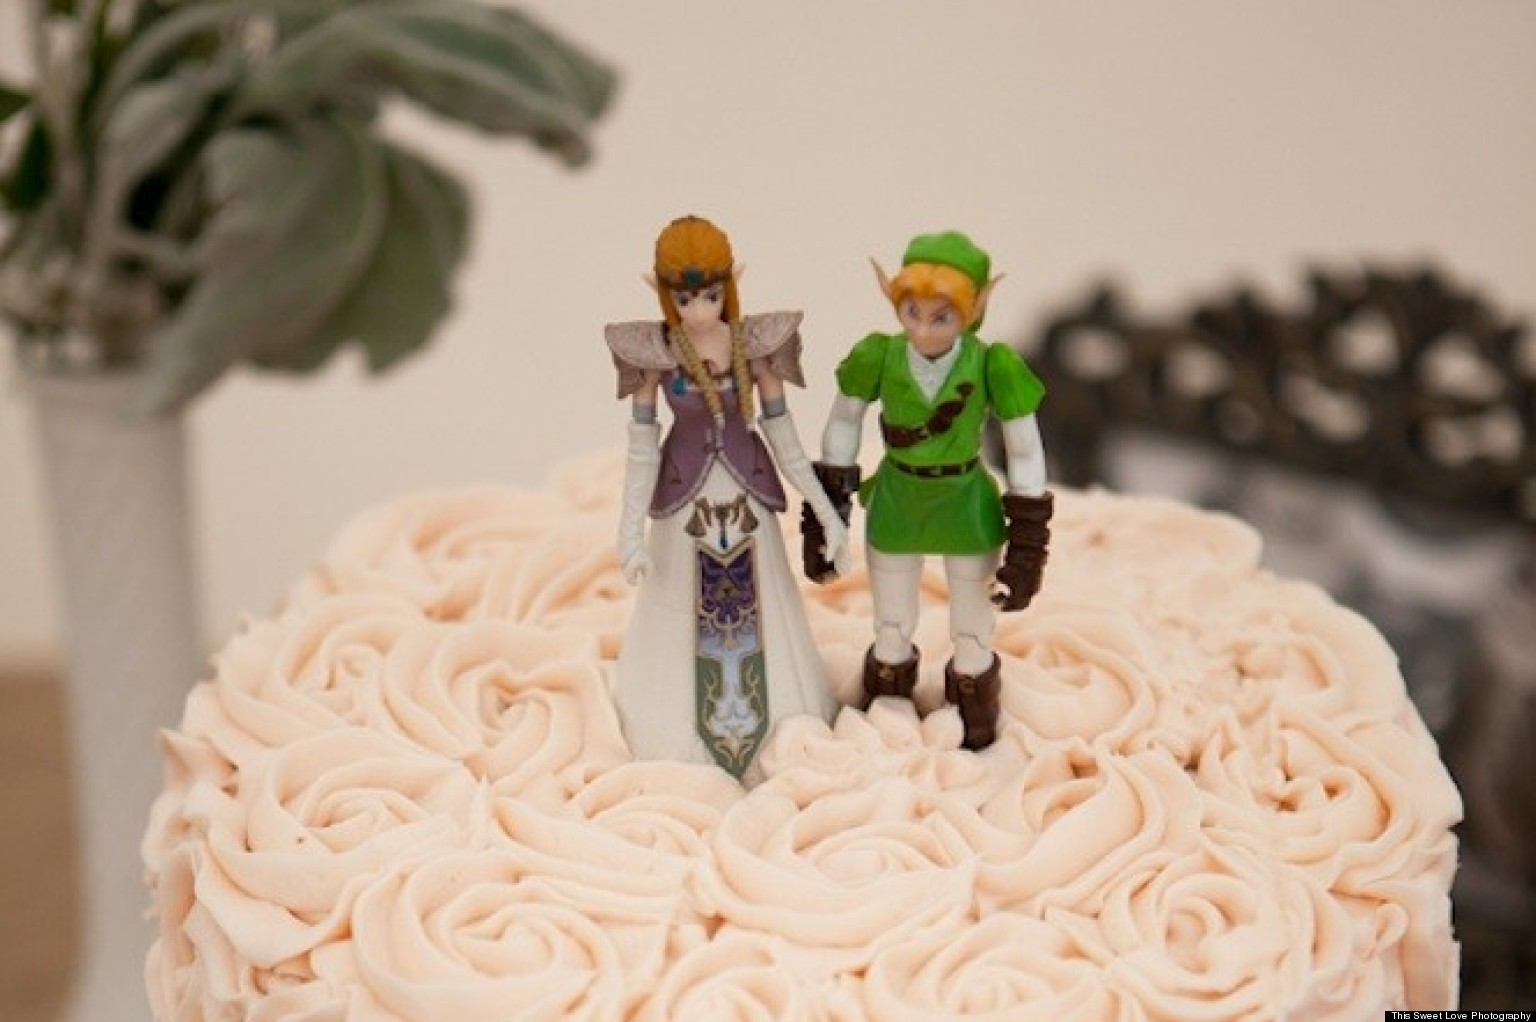 Real wedding quirky diy nuptials inspired by the legend for Legend of zelda wedding dress